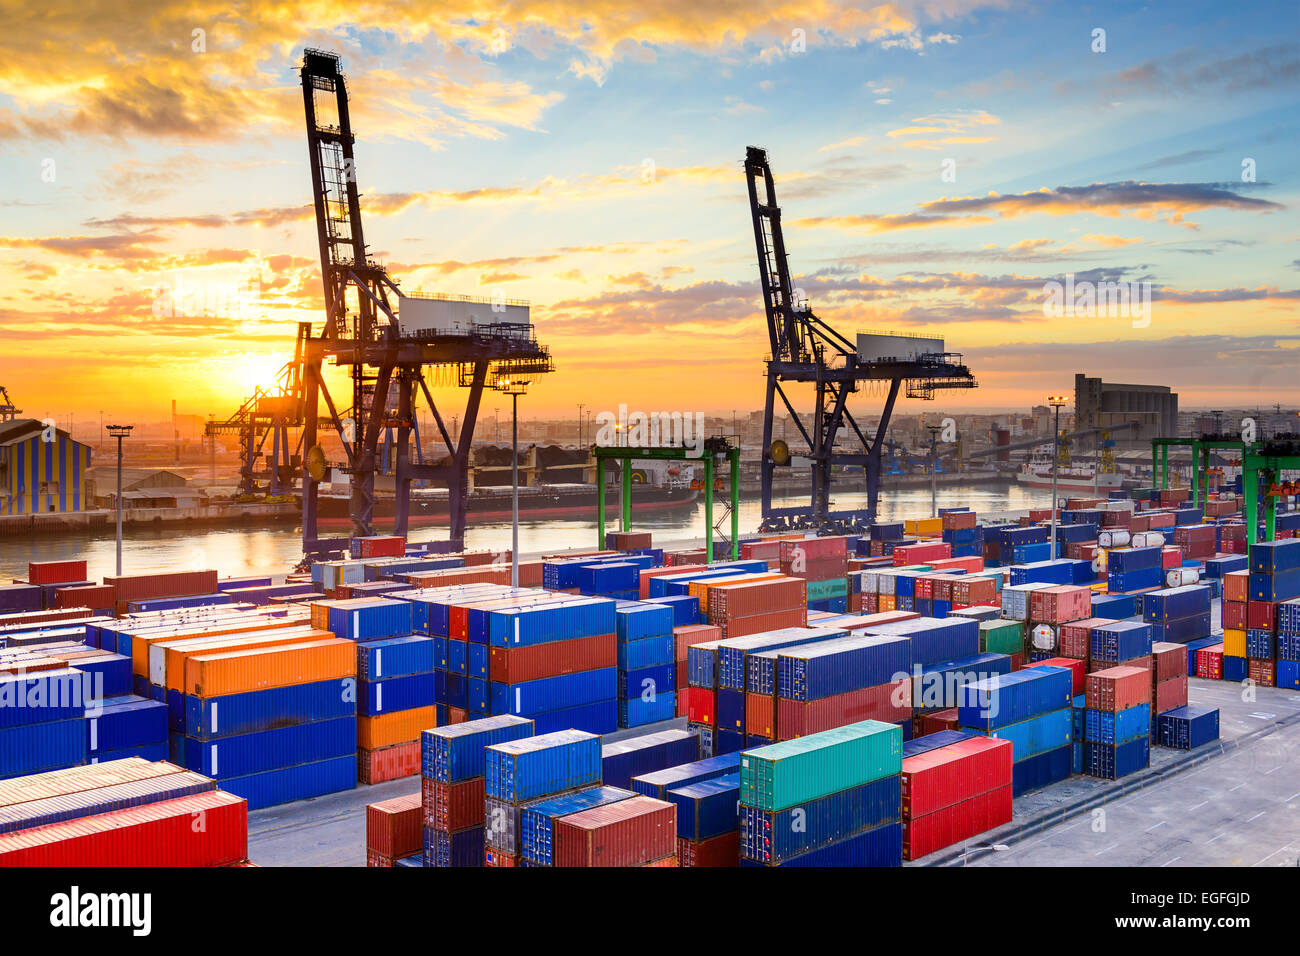 Industrial port at dawn at the Port of Casablanca, Morocco. - Stock Image